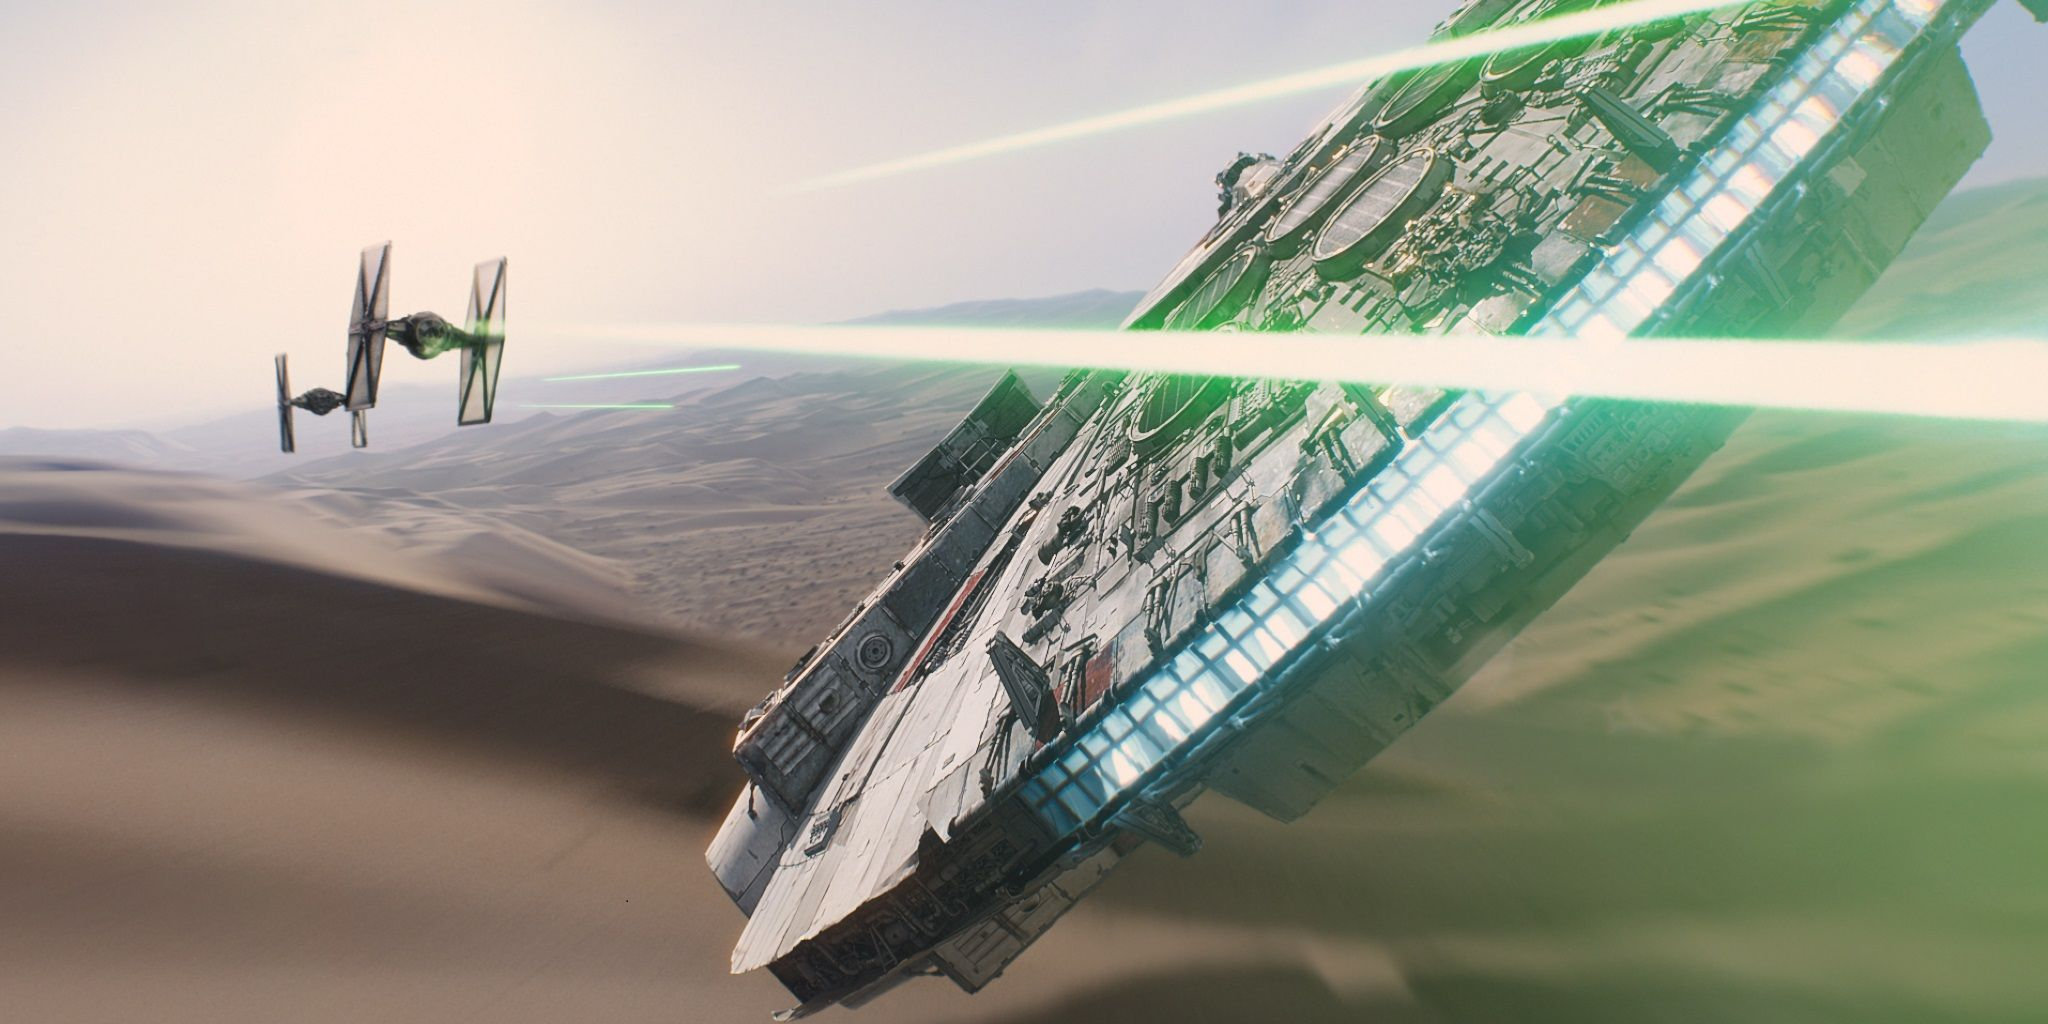 TIE Fighters attacking the Millennium Falcon in Star Wars Episode VII The Force Awakens